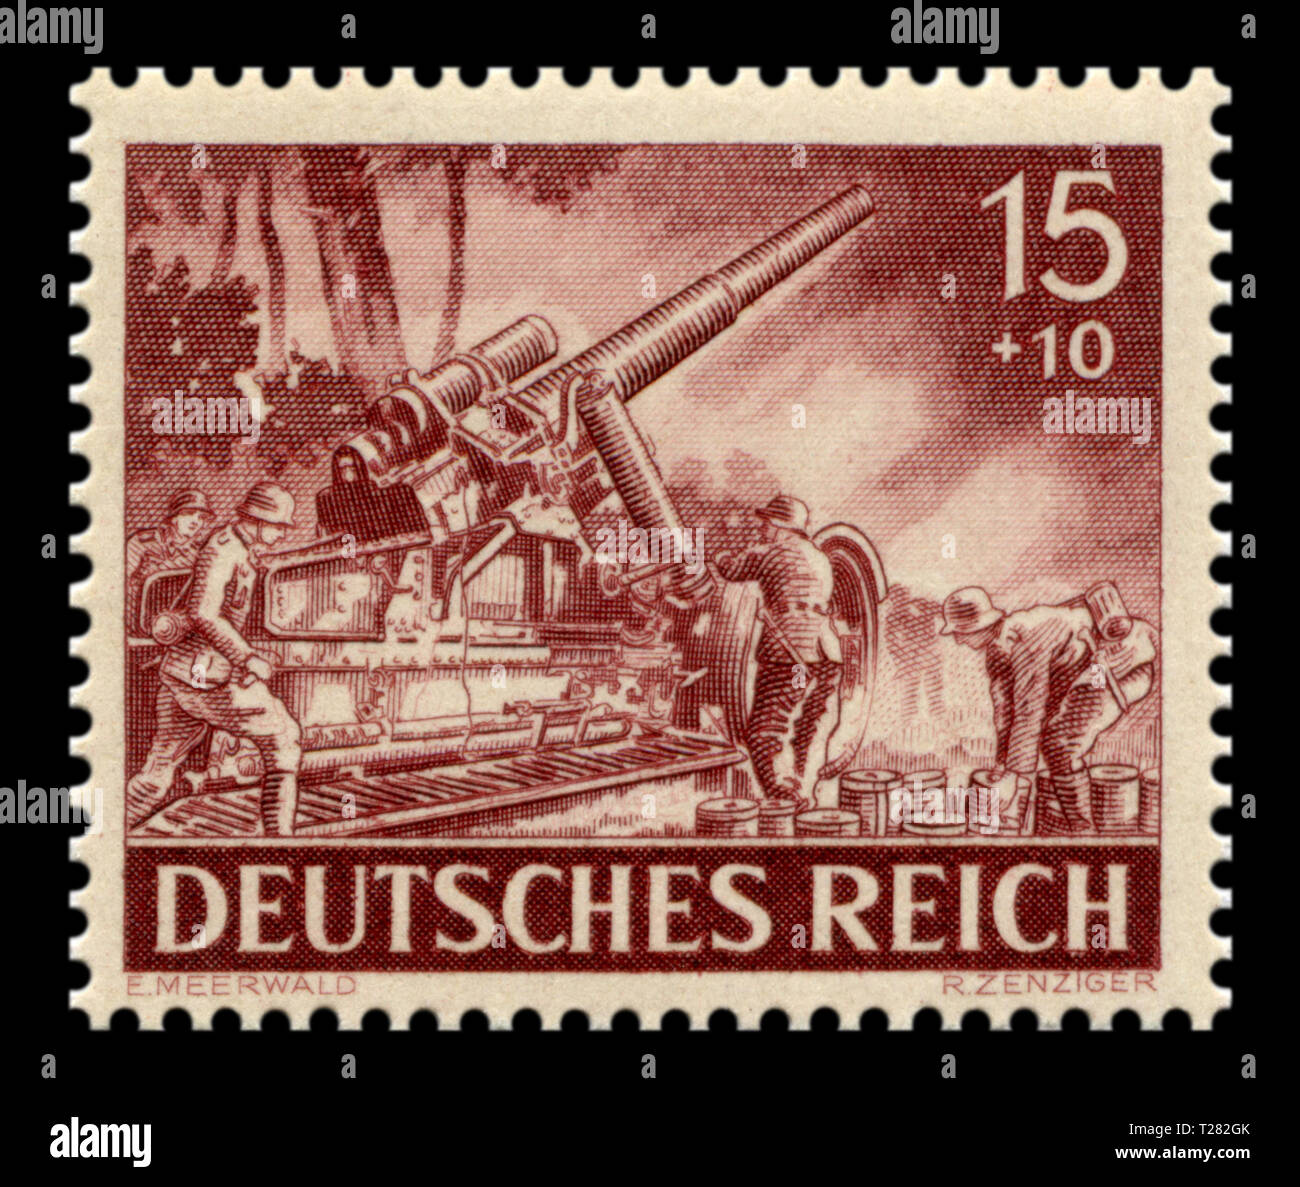 German historical stamp: 17 cm Cannon 18 on Heavy Howitzer Carriage, Artillery troops. The heavy artillery of the Wehrmacht, memorial day issue 1943 - Stock Image